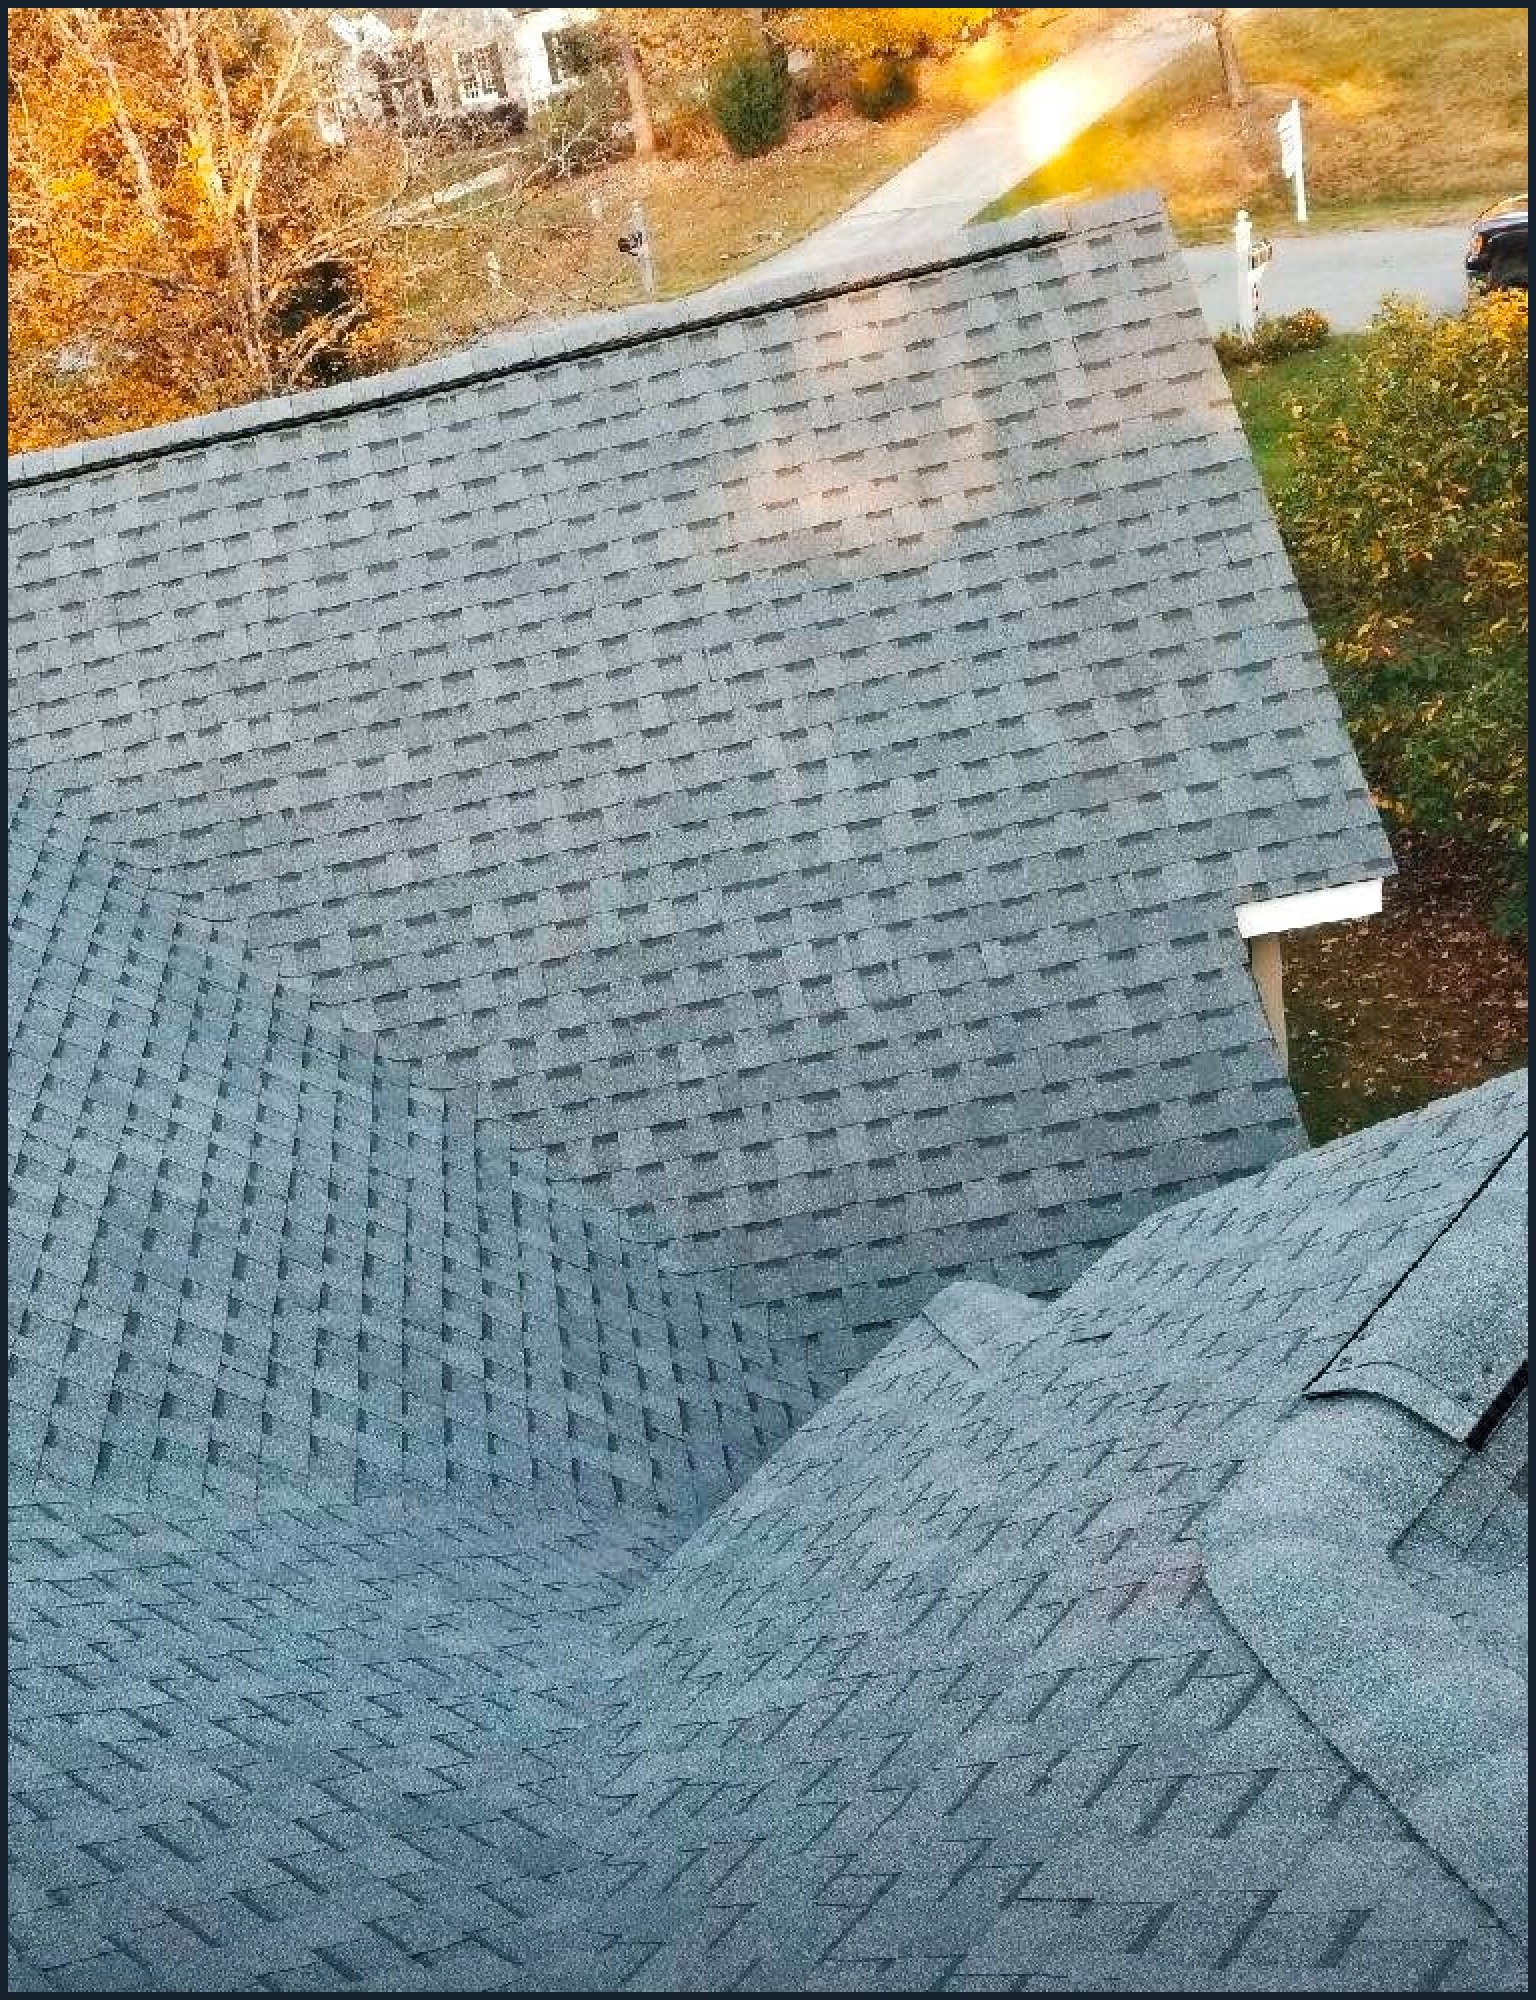 03-Roofing-tile